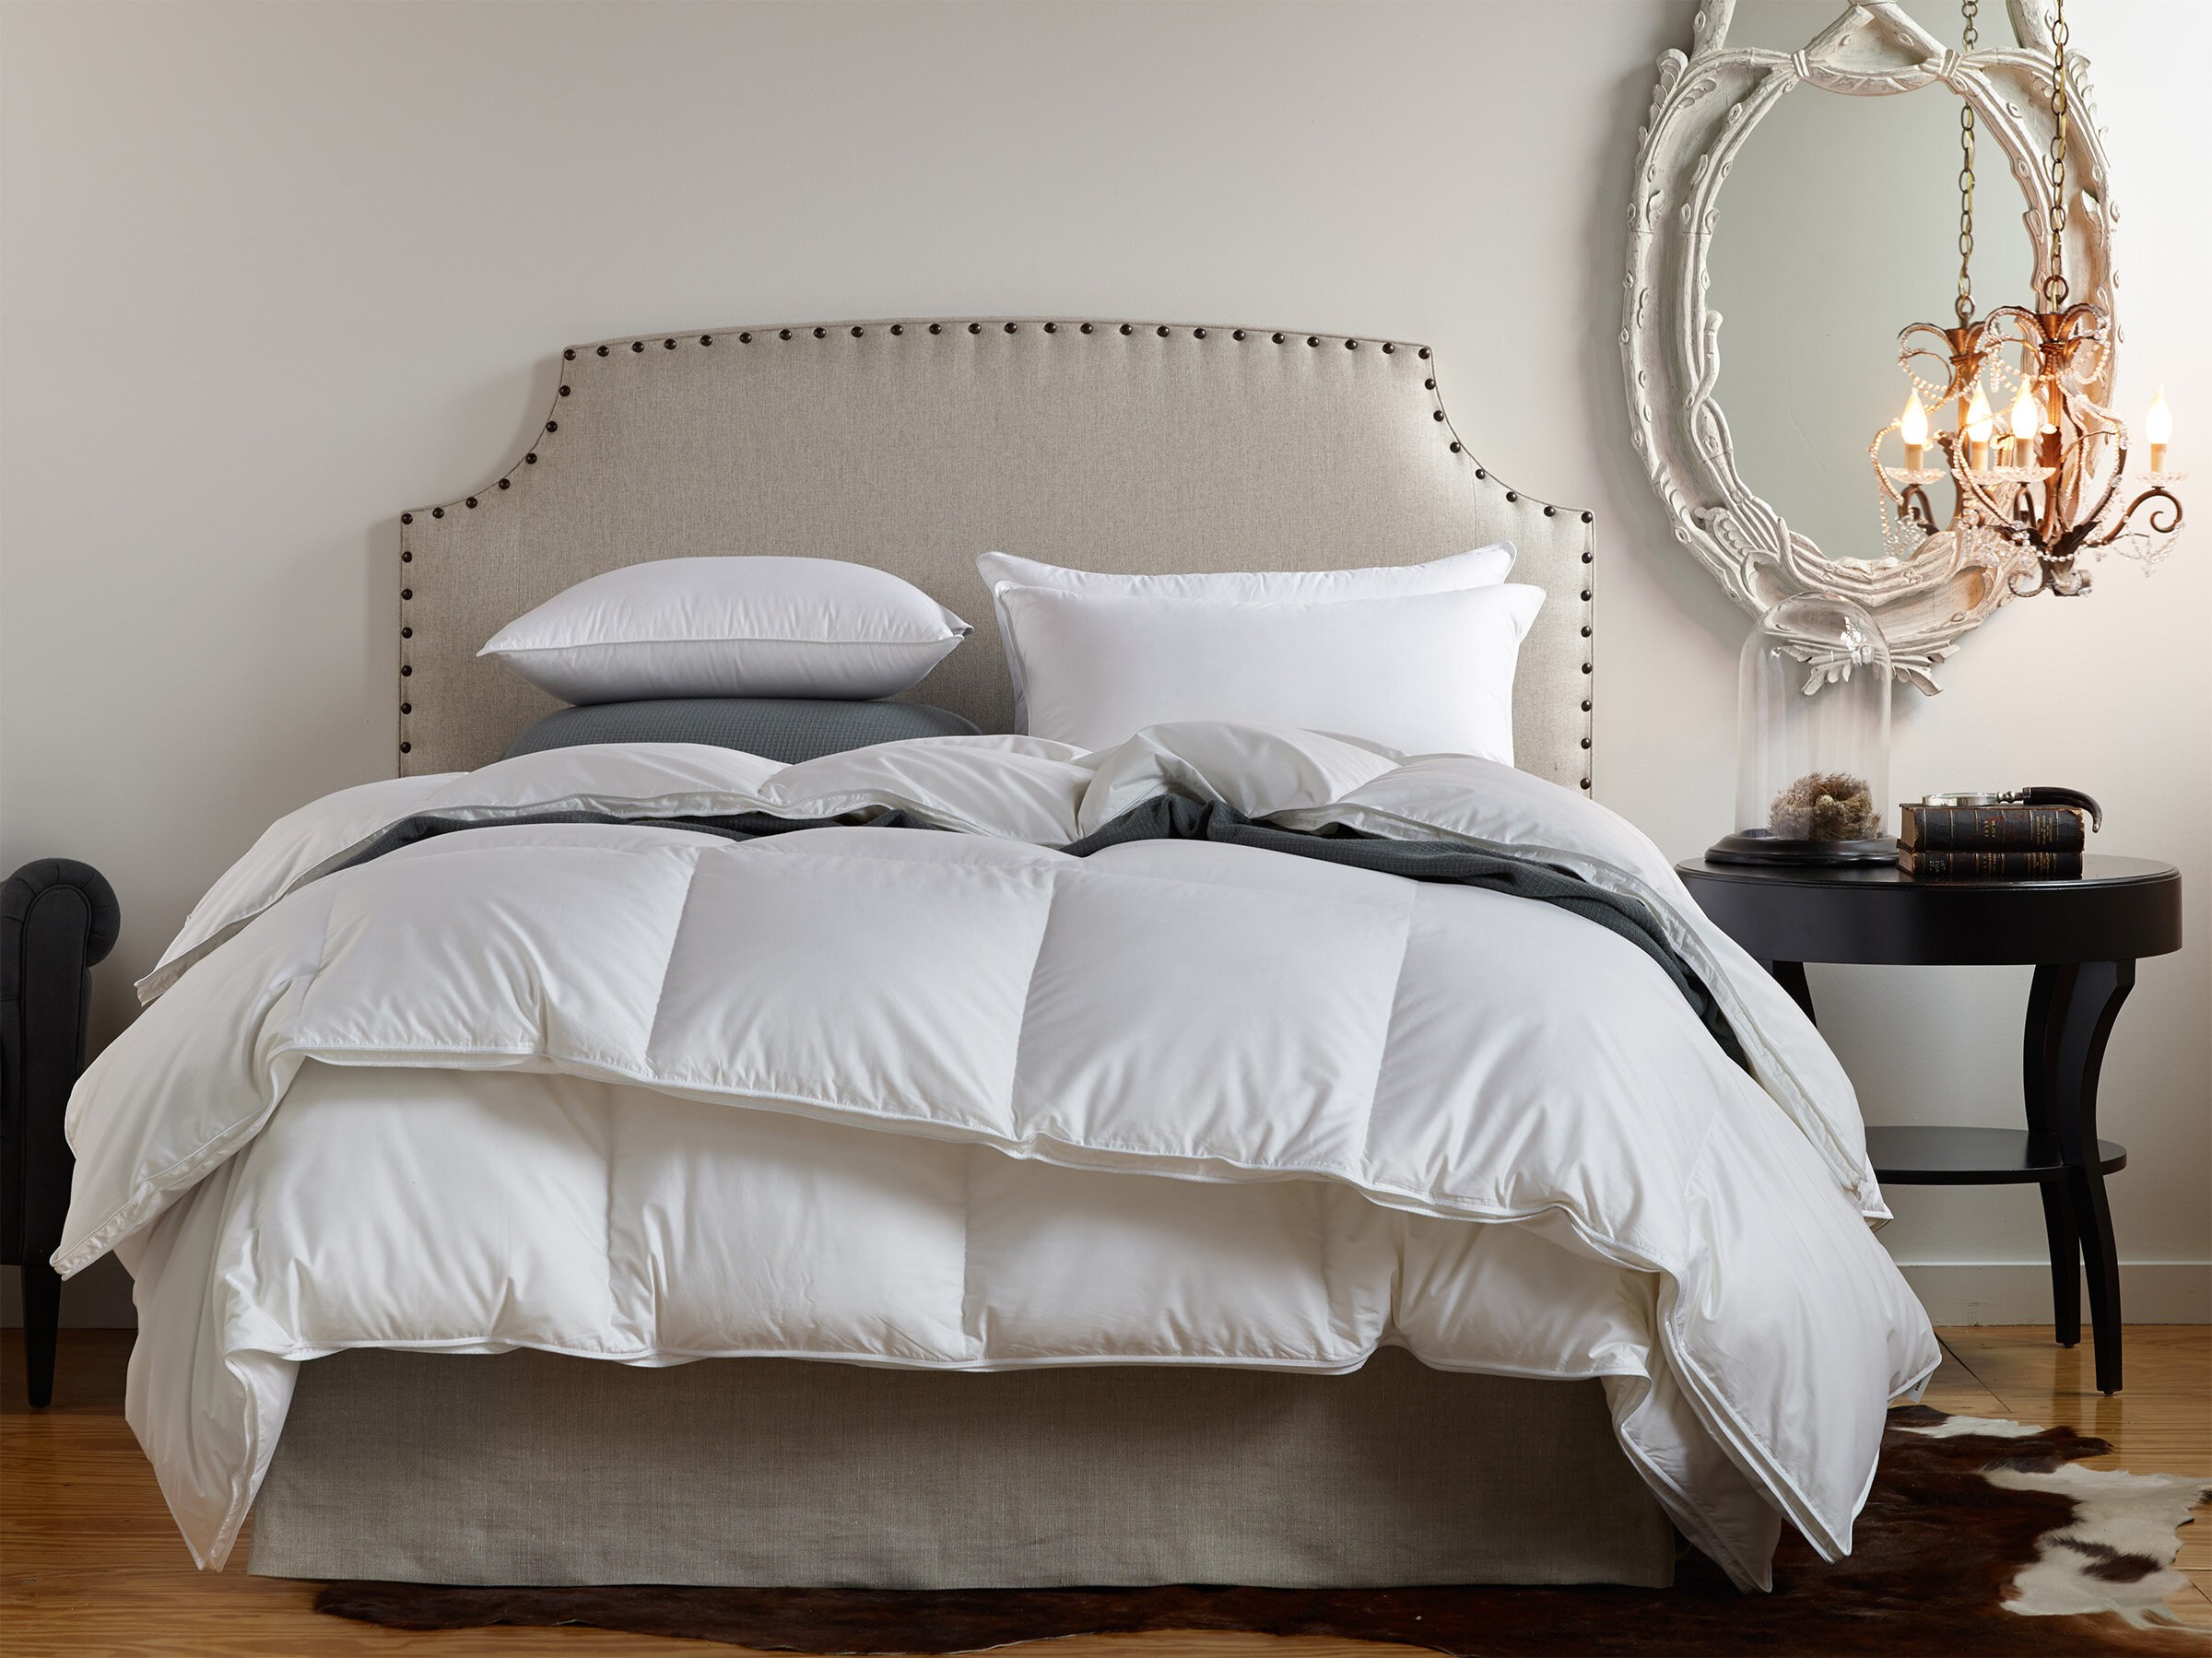 fringe pdx sedgwick reviews house bath alternative comforter wayfair hampton down classics bed home set of reversible